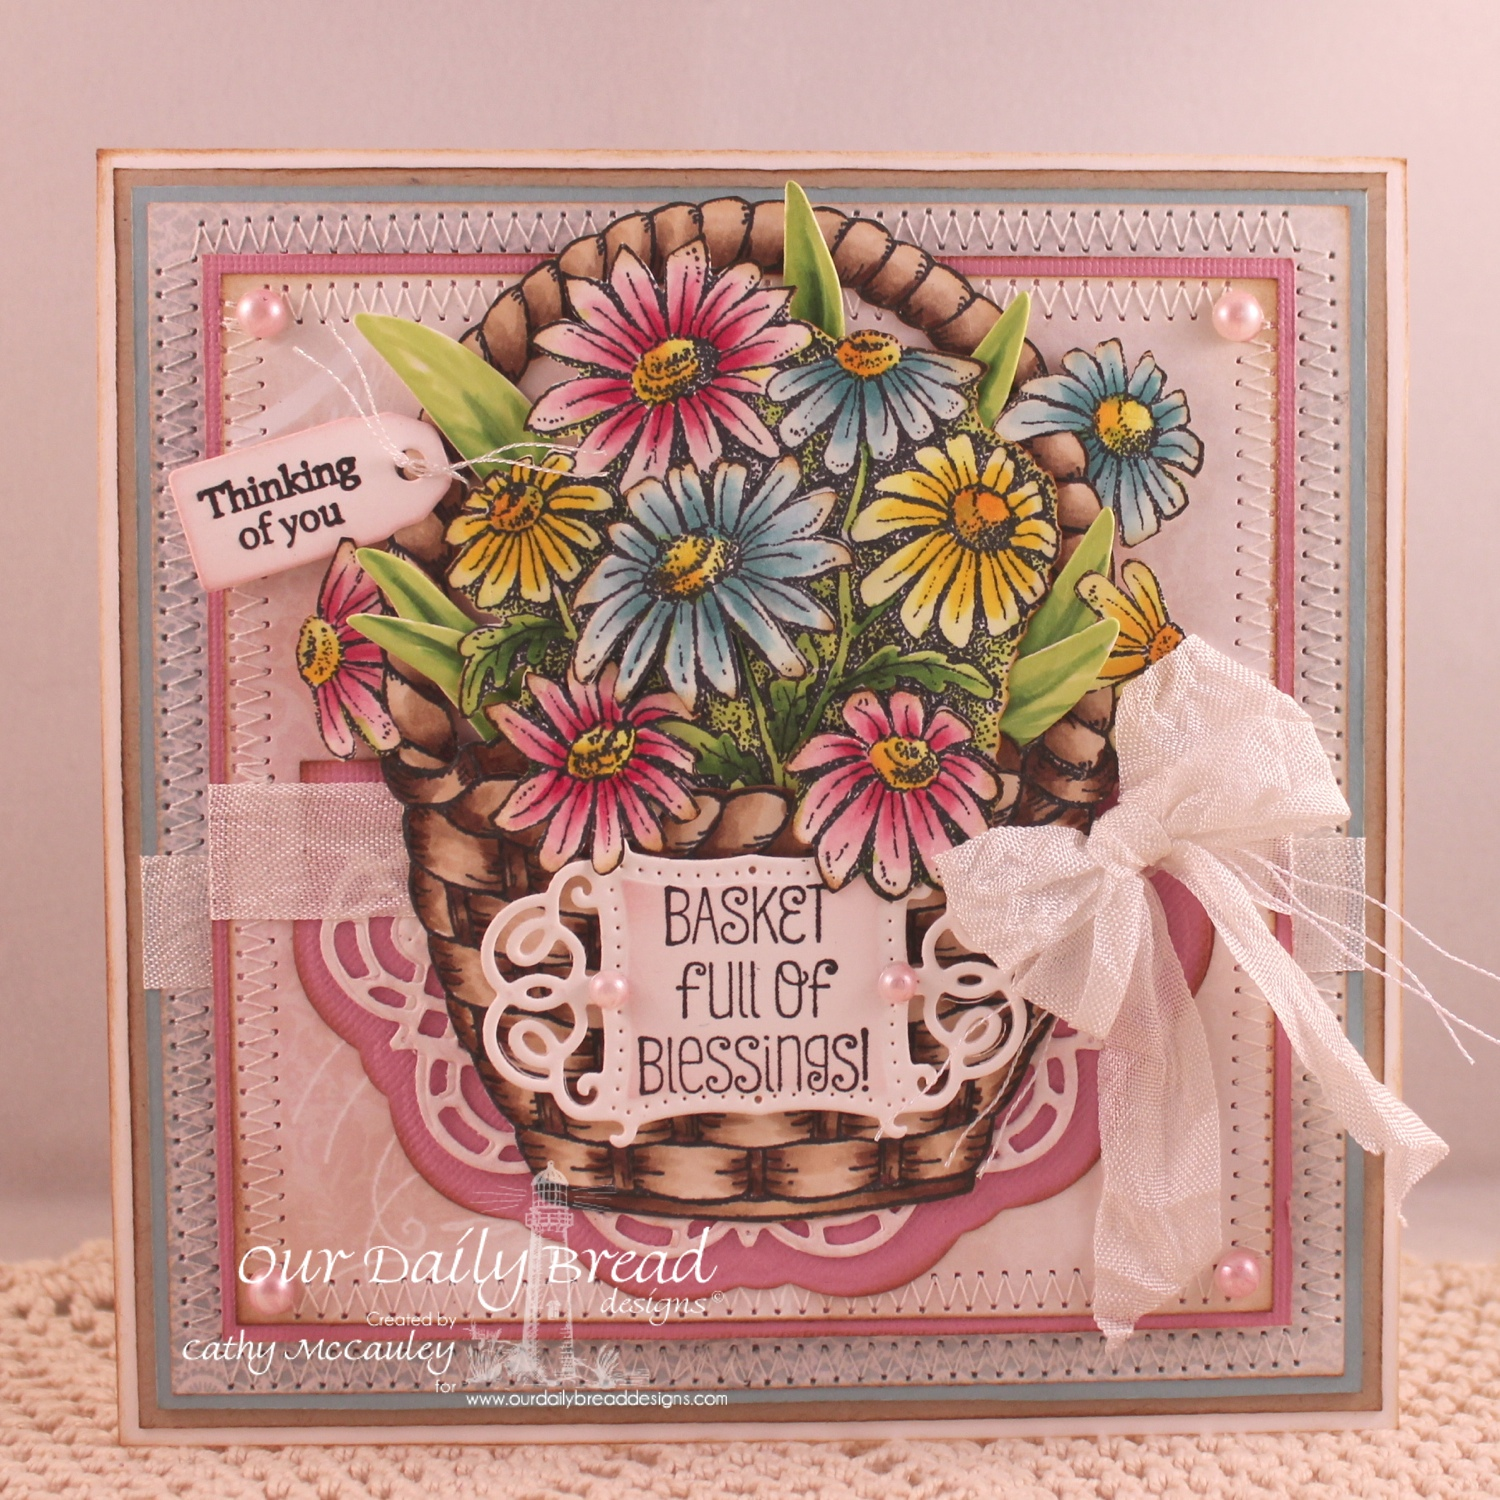 Stamps - Our Daily Bread Designs Basket of Blessings, Daisy, Mini Tag Sentiments, ODBD Custom Mini Tags Dies, ODBD Custom Doily Dies, ODBD Custom Vintage Flourished Pattern Die, ODBD Shabby Rose Paper Collection, ODBD Custom Zinnia and Leaves Dies